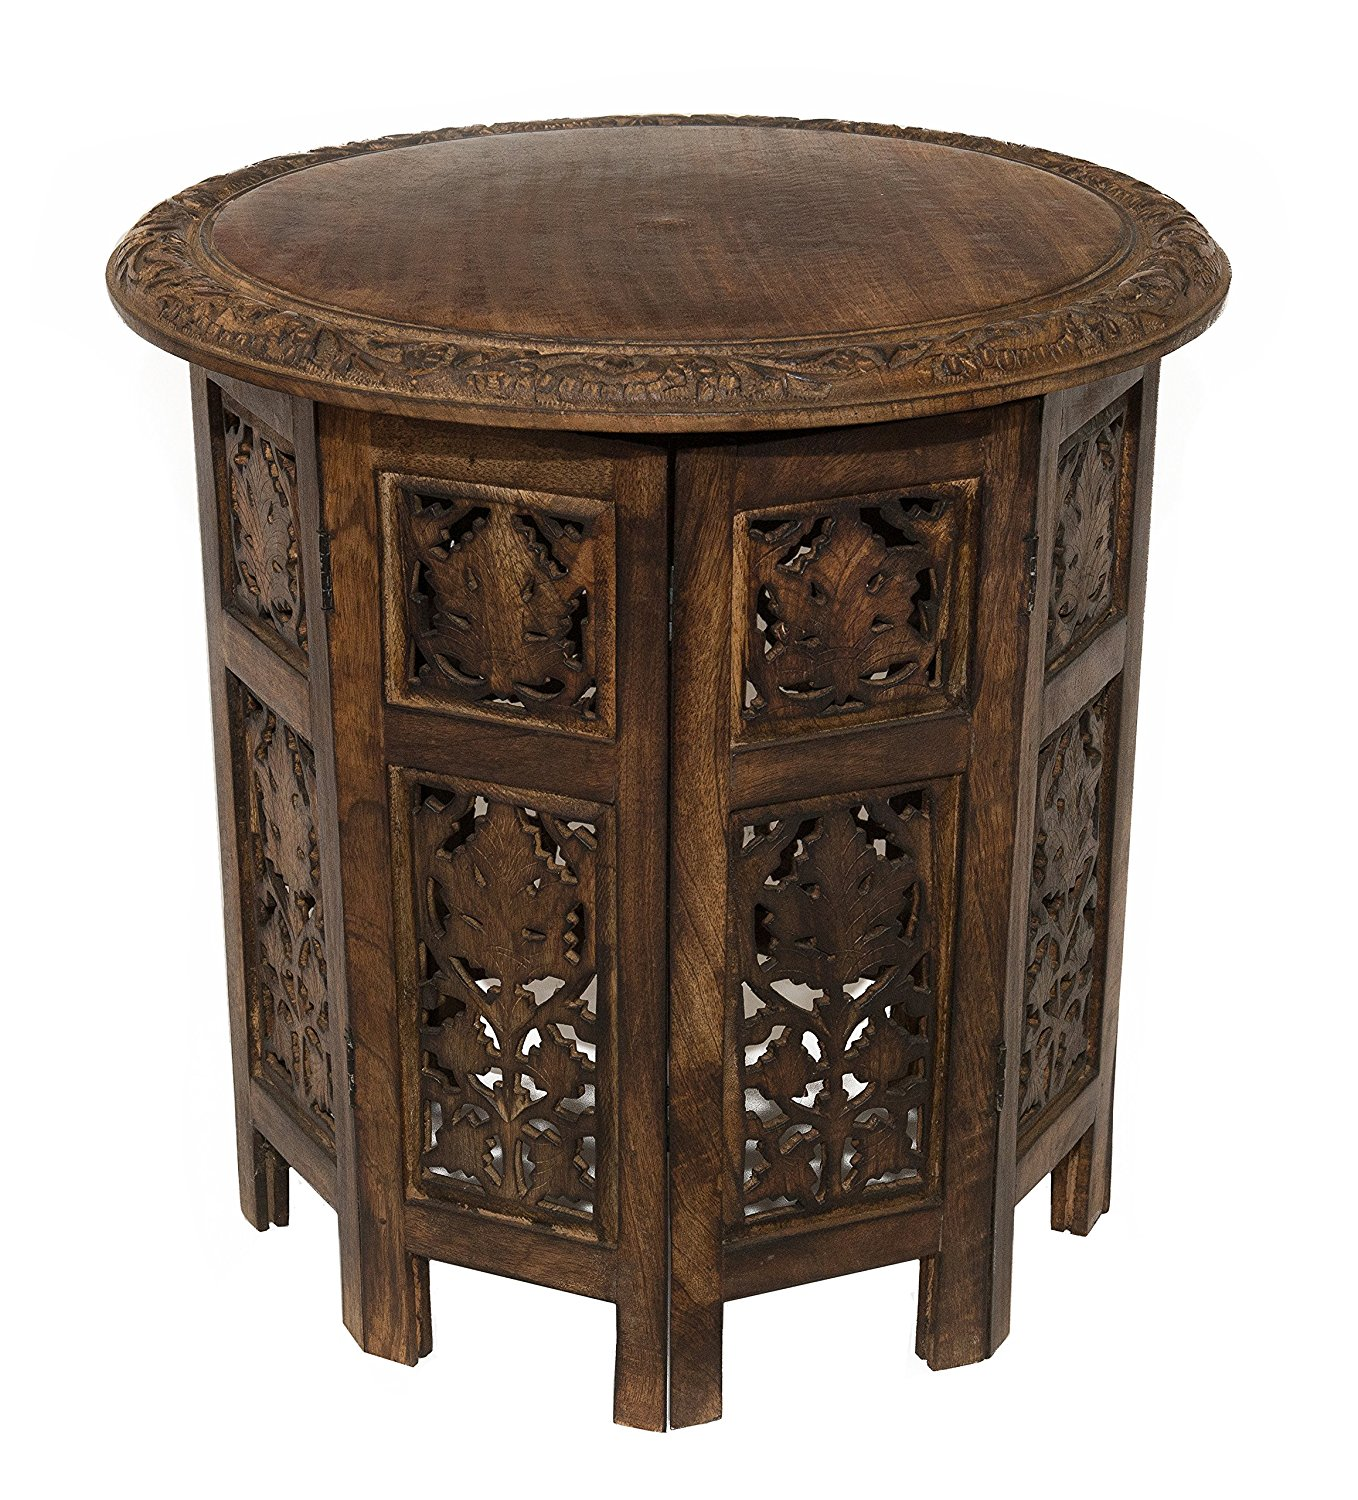 lovely small accent table for ornate rustic round wooden dining room furniture names outdoor wicker covers faux leather chairs painted cabinets wall decor end tables ikea